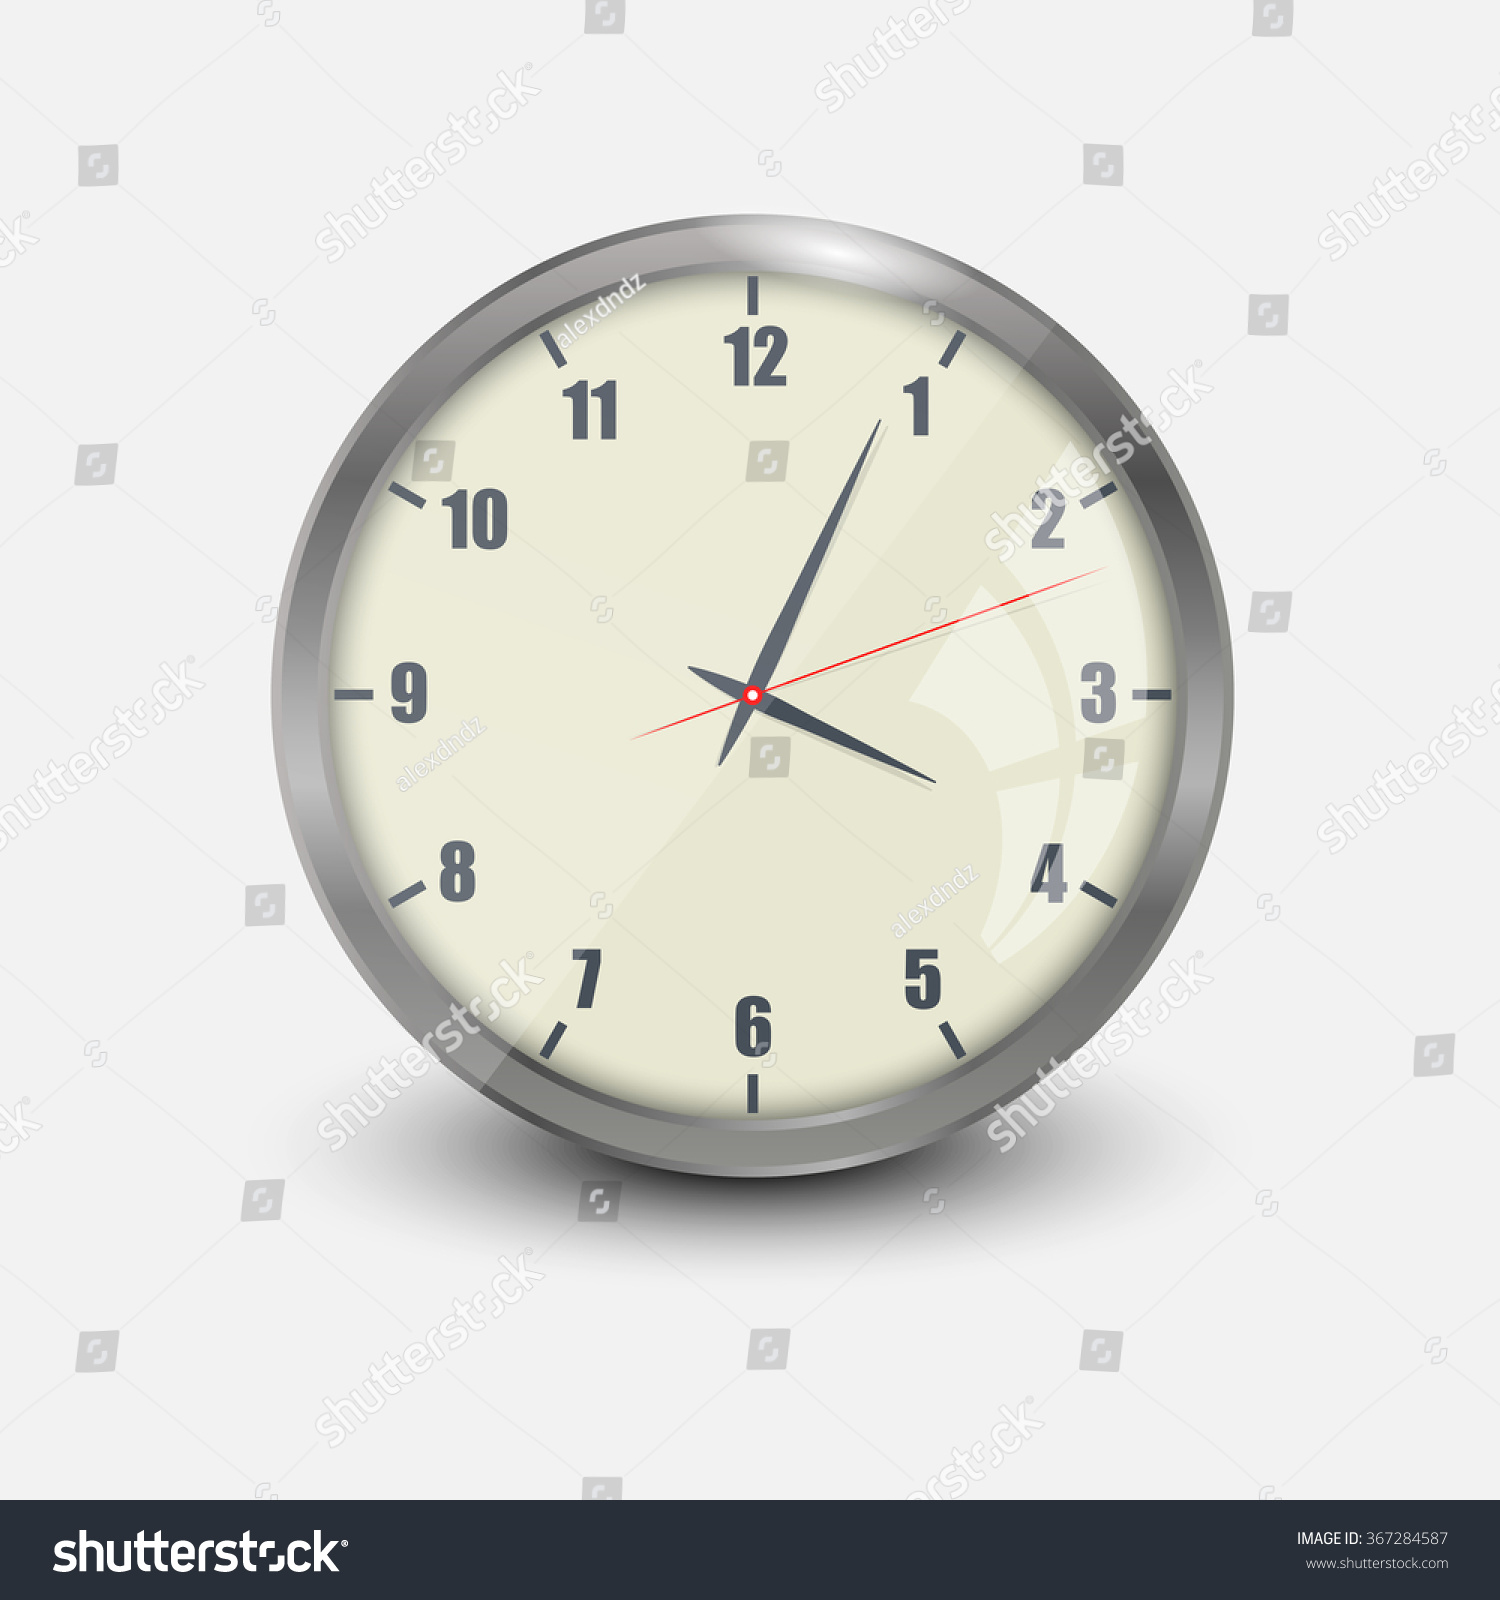 Realistic vector illustration wall clock stock vector 367284587 realistic vector illustration of wall clock amipublicfo Image collections